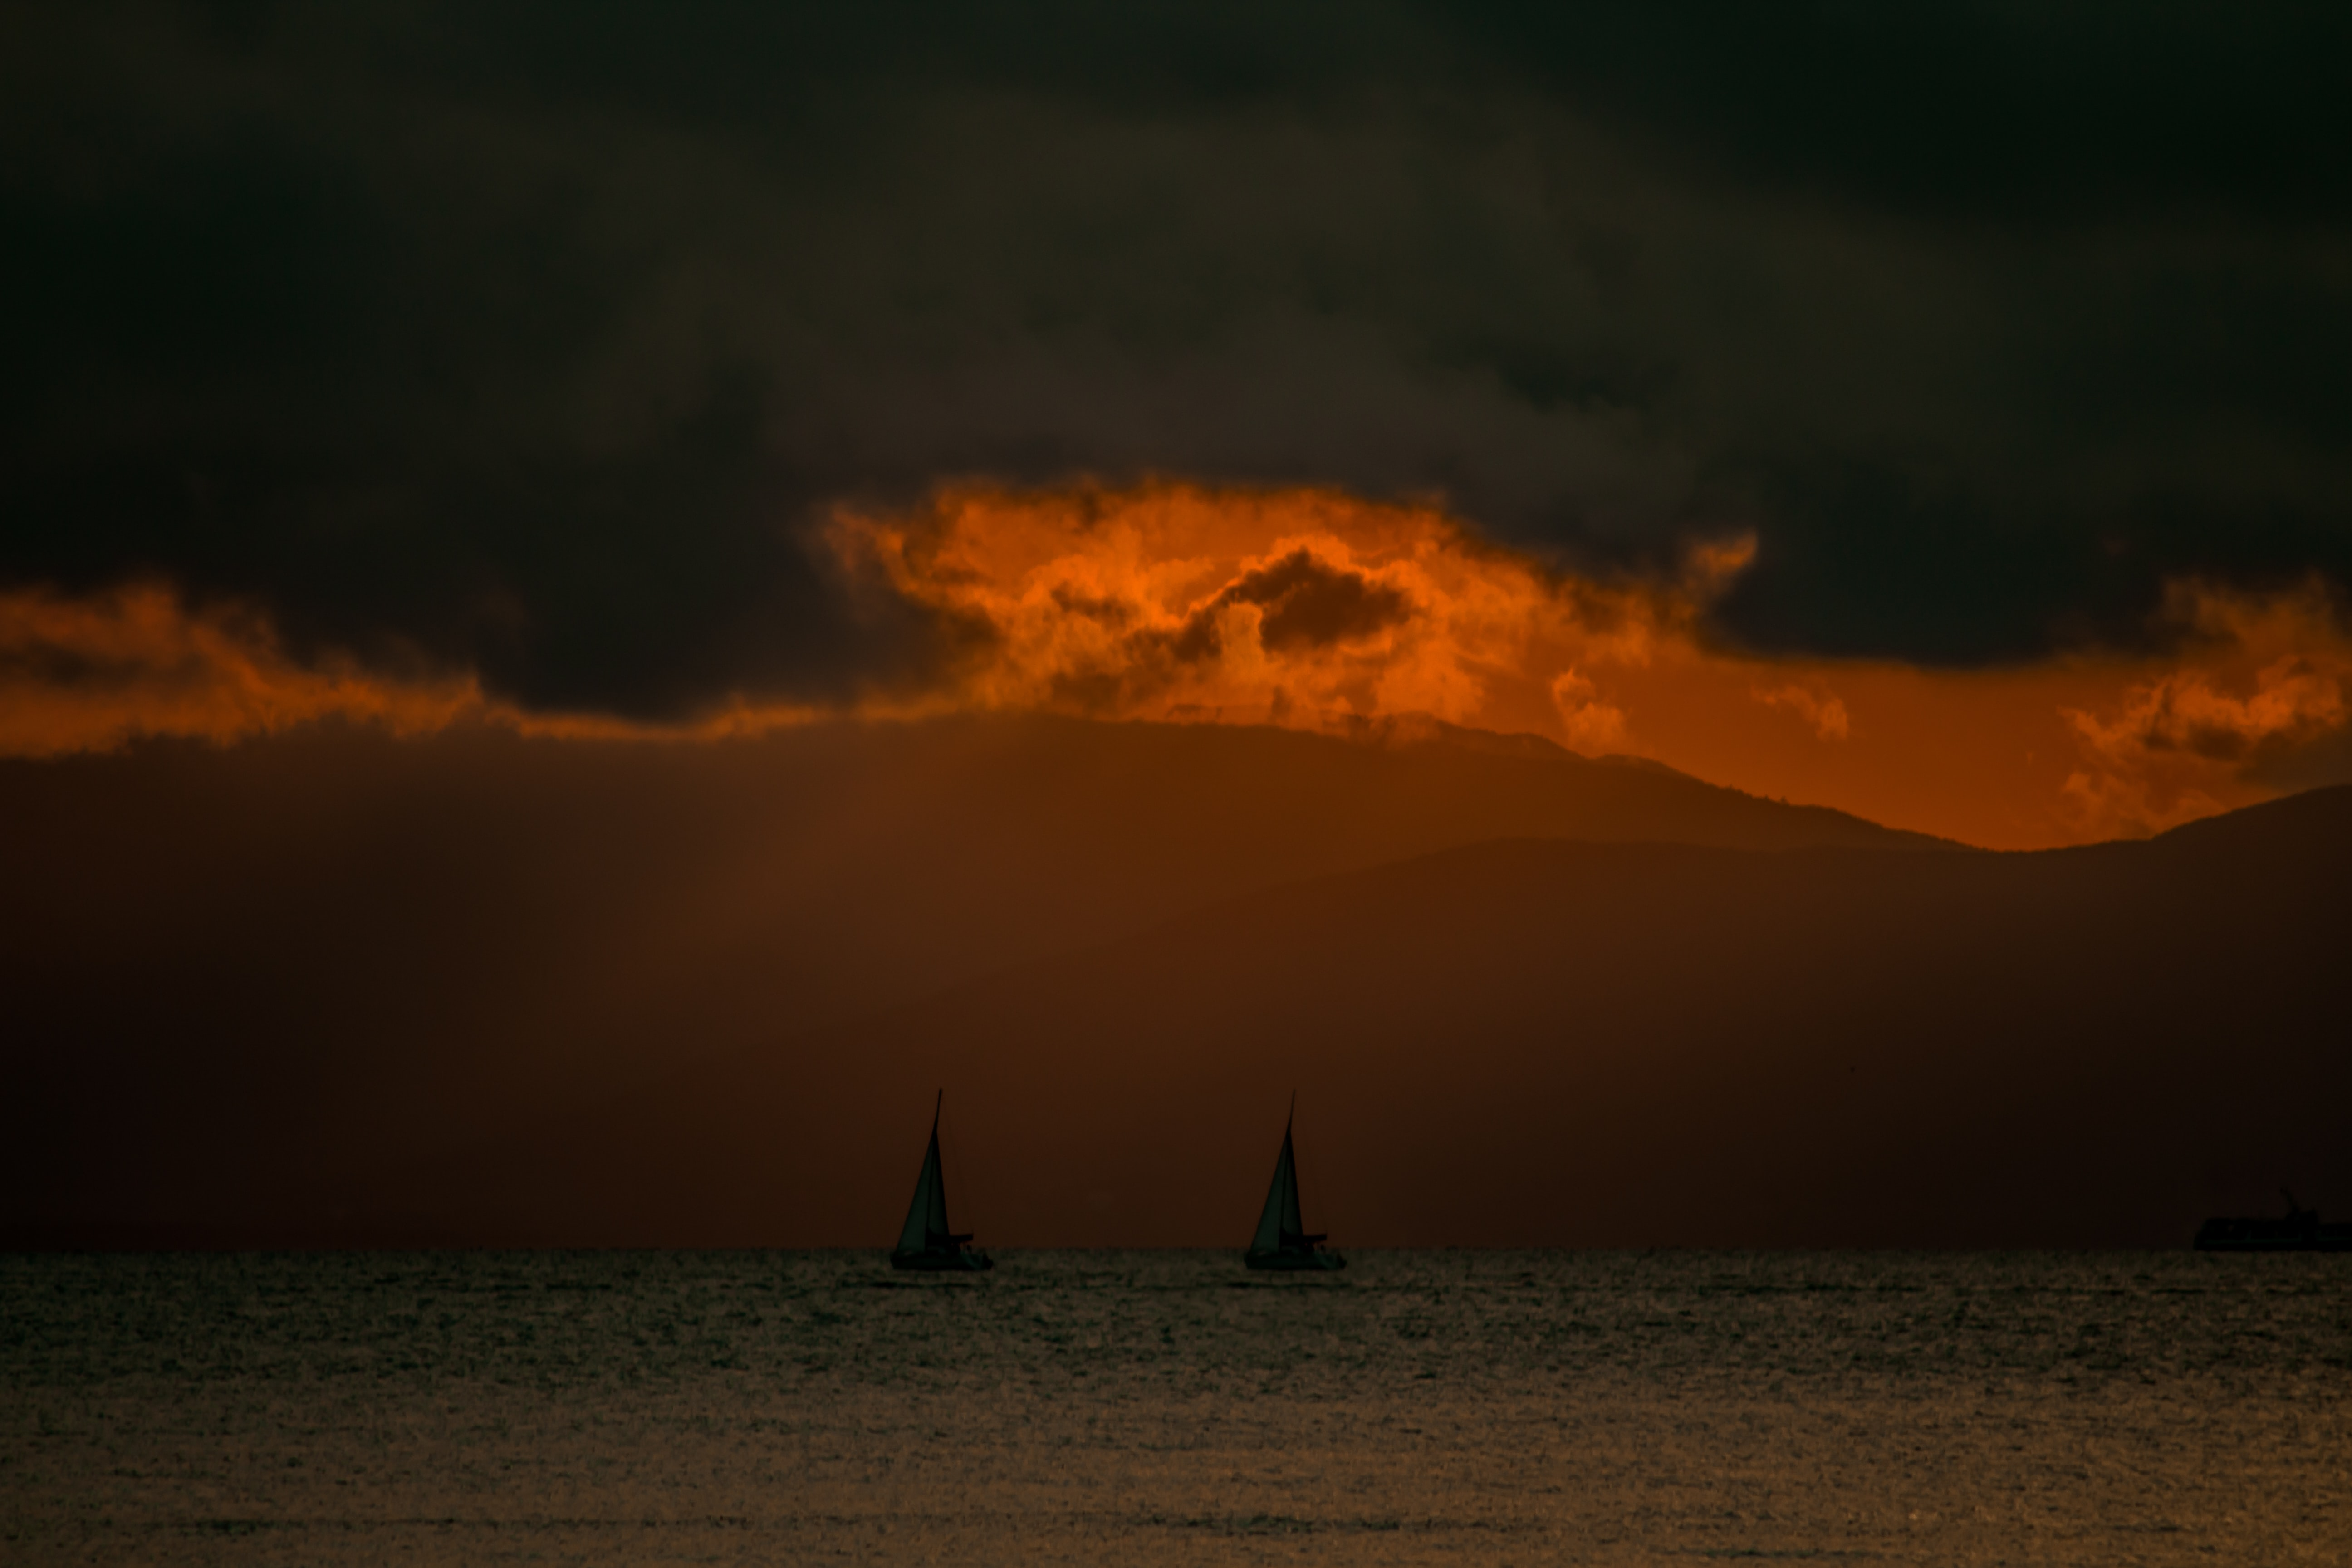 two silhouette of sail boats